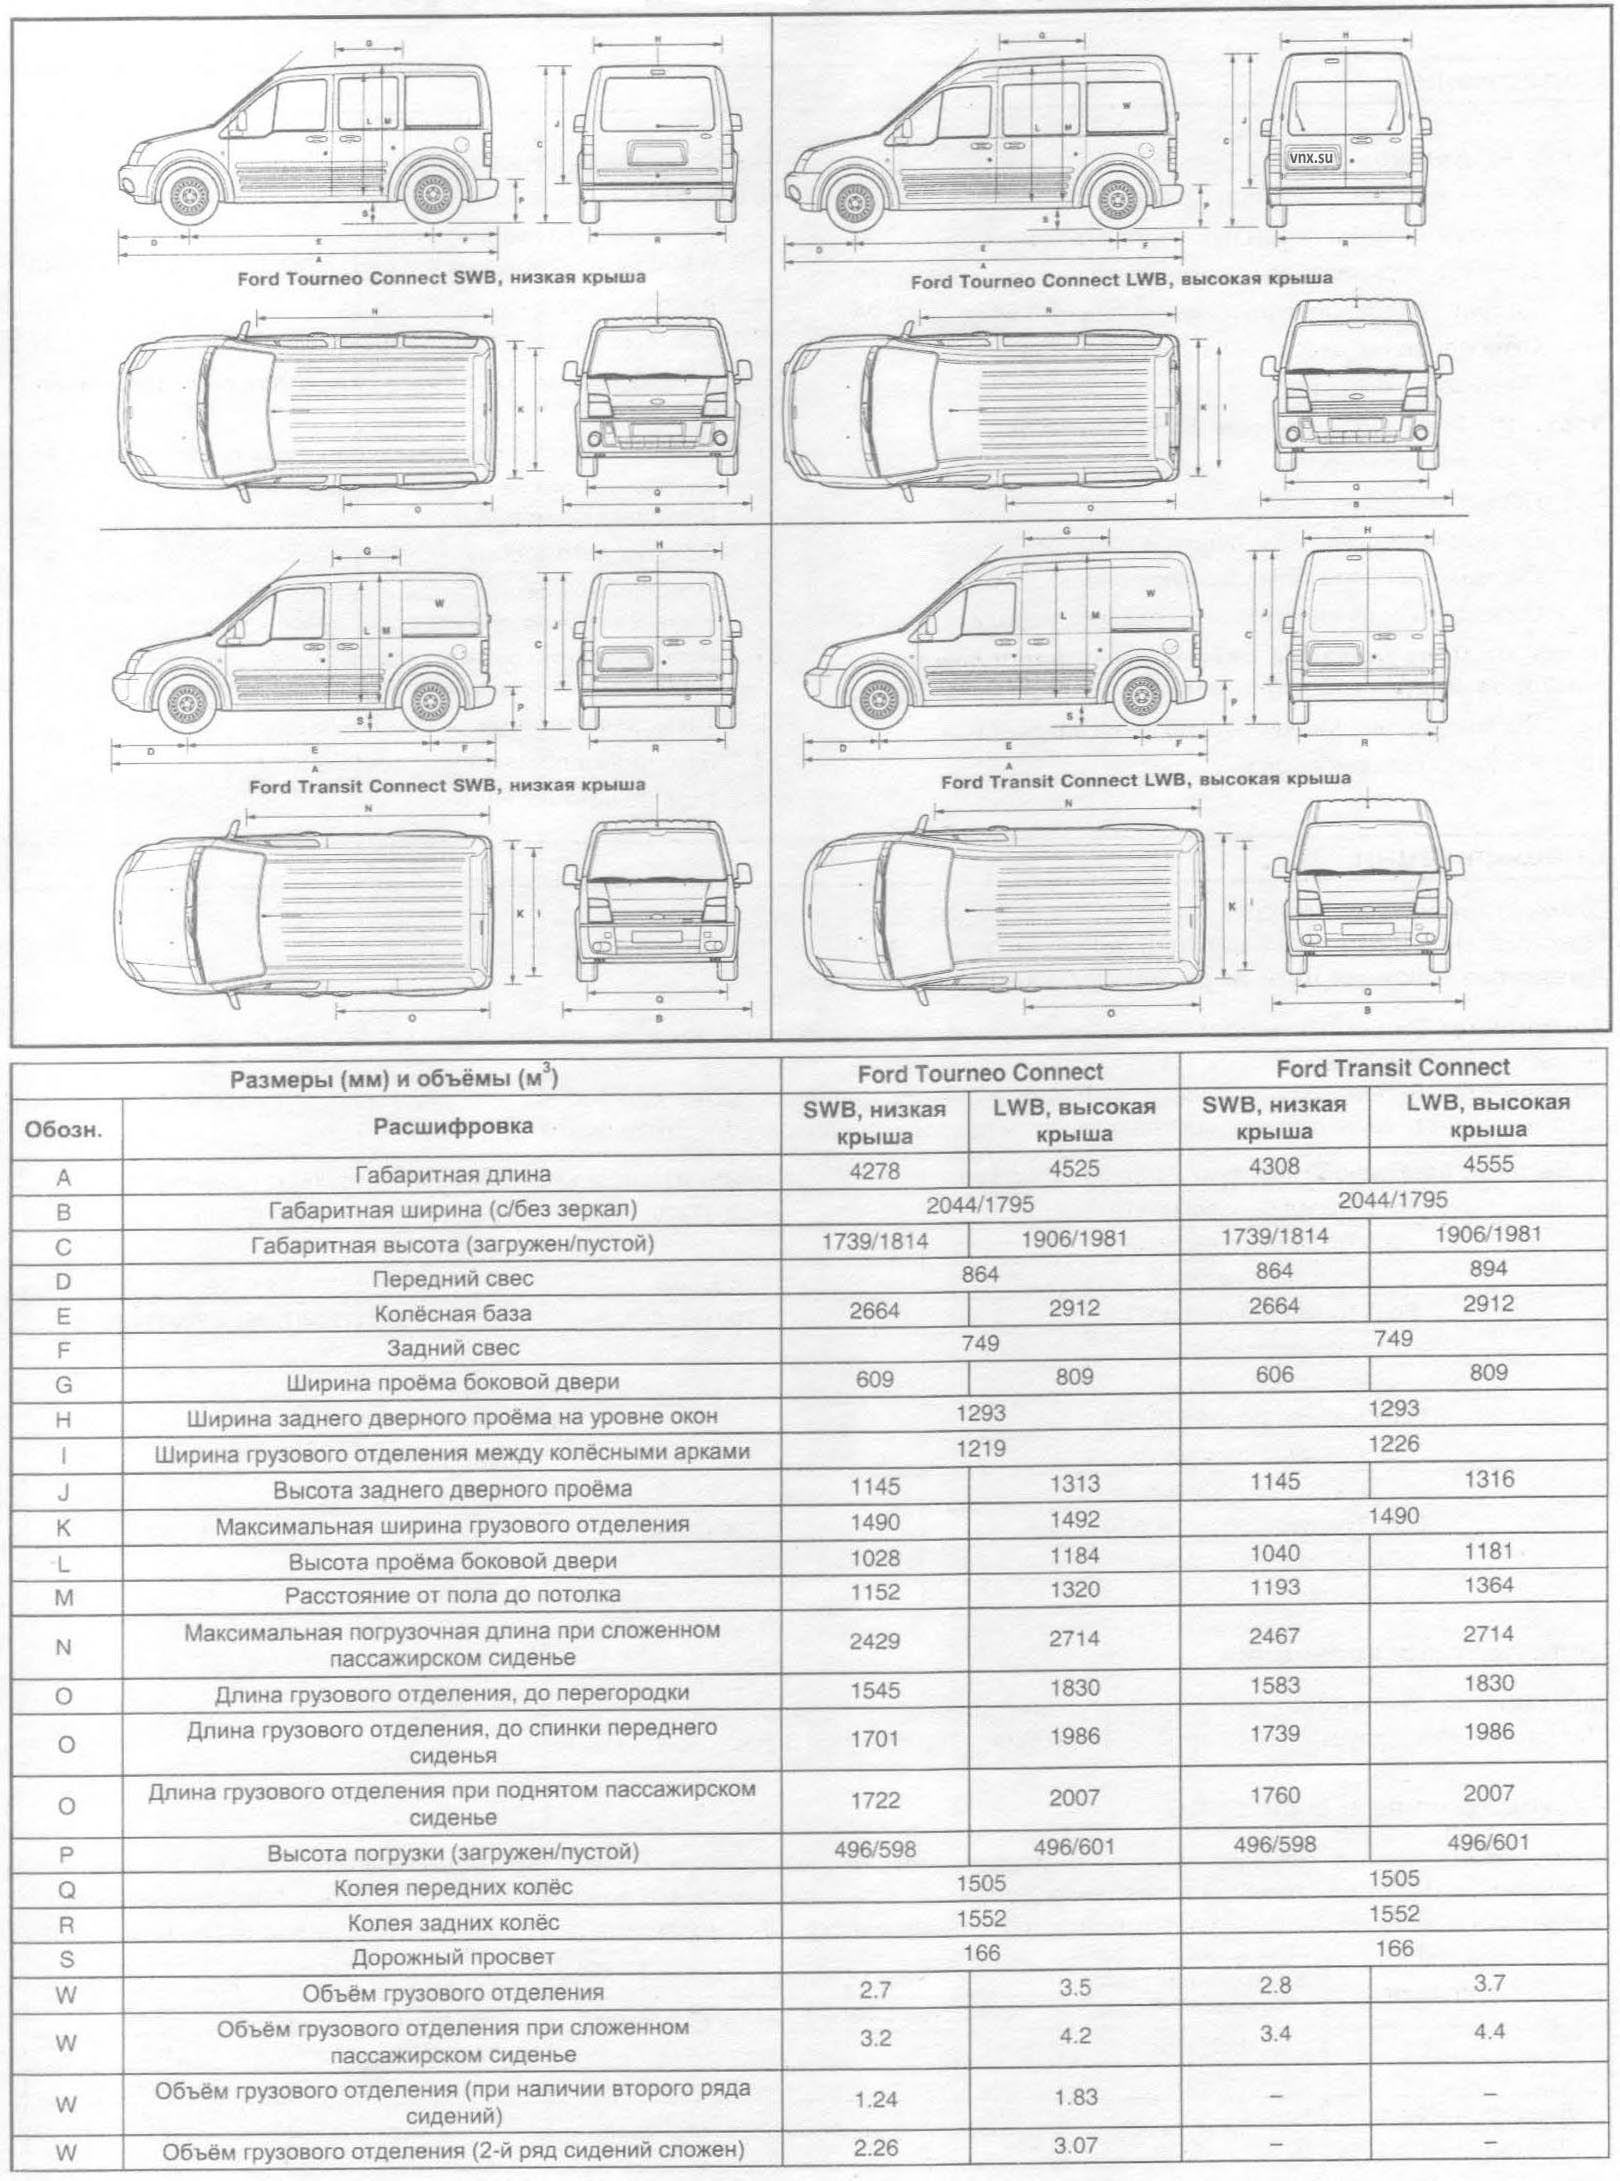 2002 Ford Transit Fuse Box Diagram Great Design Of Wiring 2007 F350 Panel Images Gallery